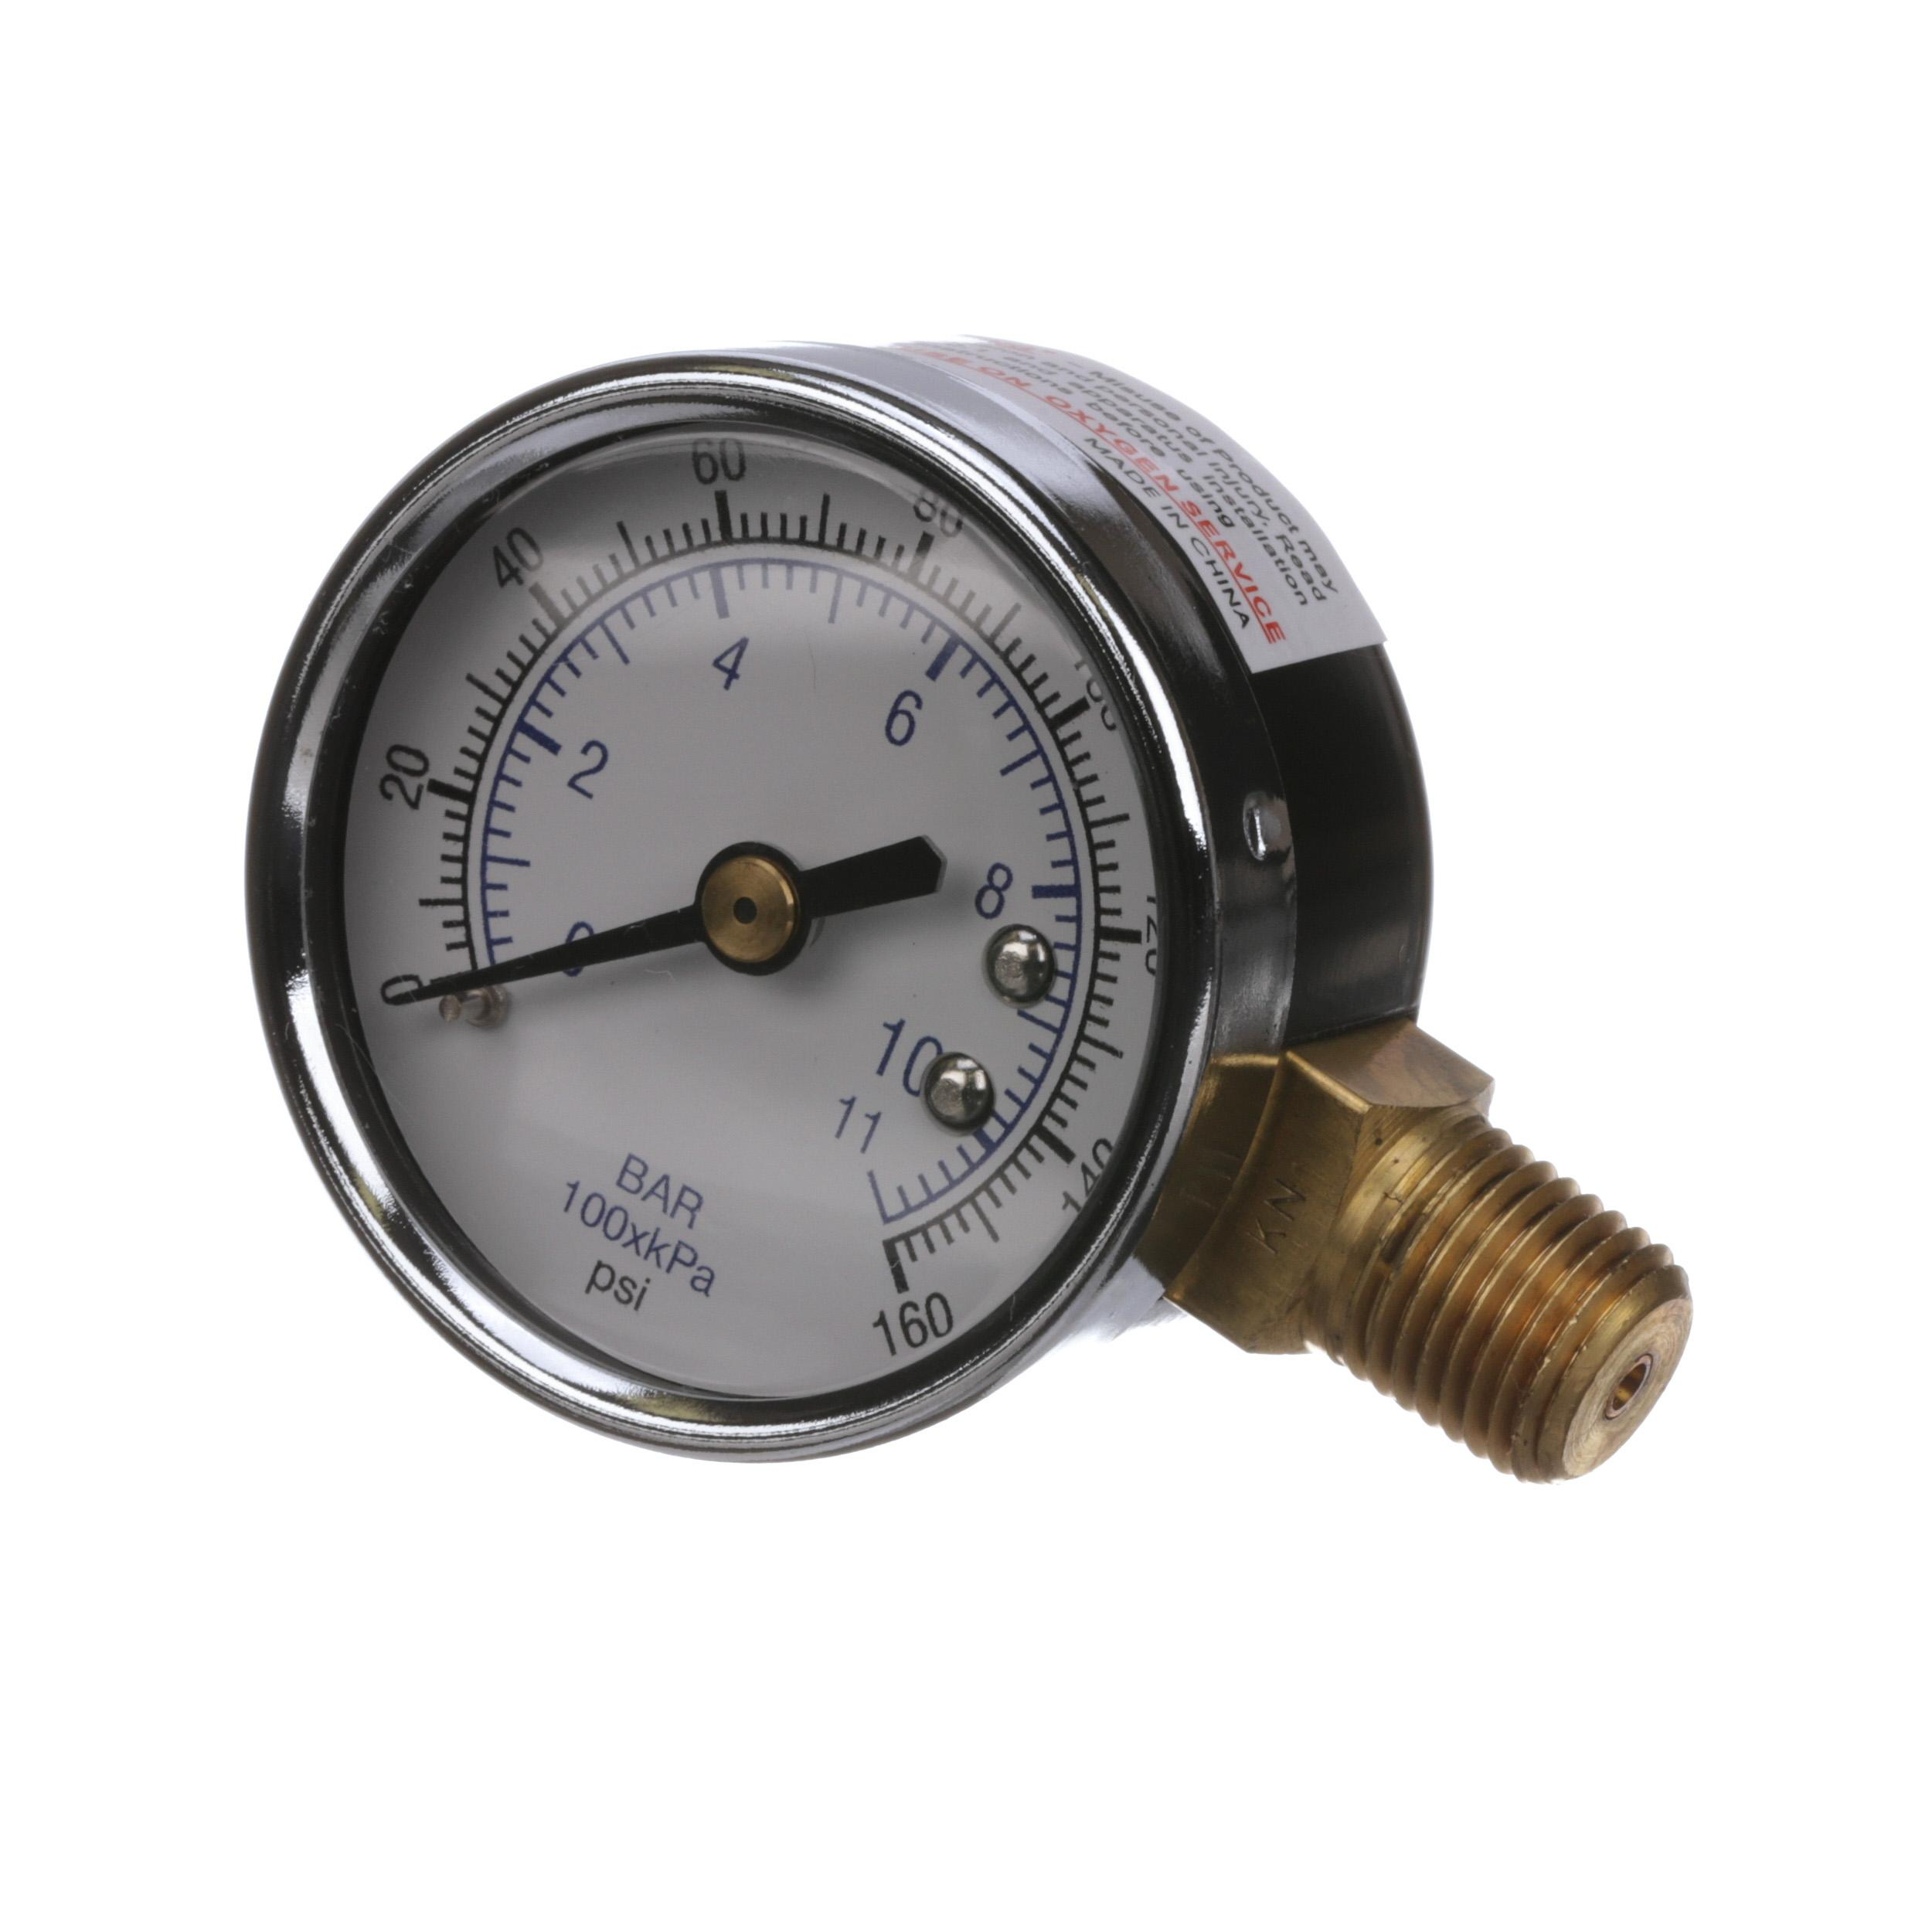 MANITOWOC GAUGE RIGHT HAND 0 TO 160 PSI